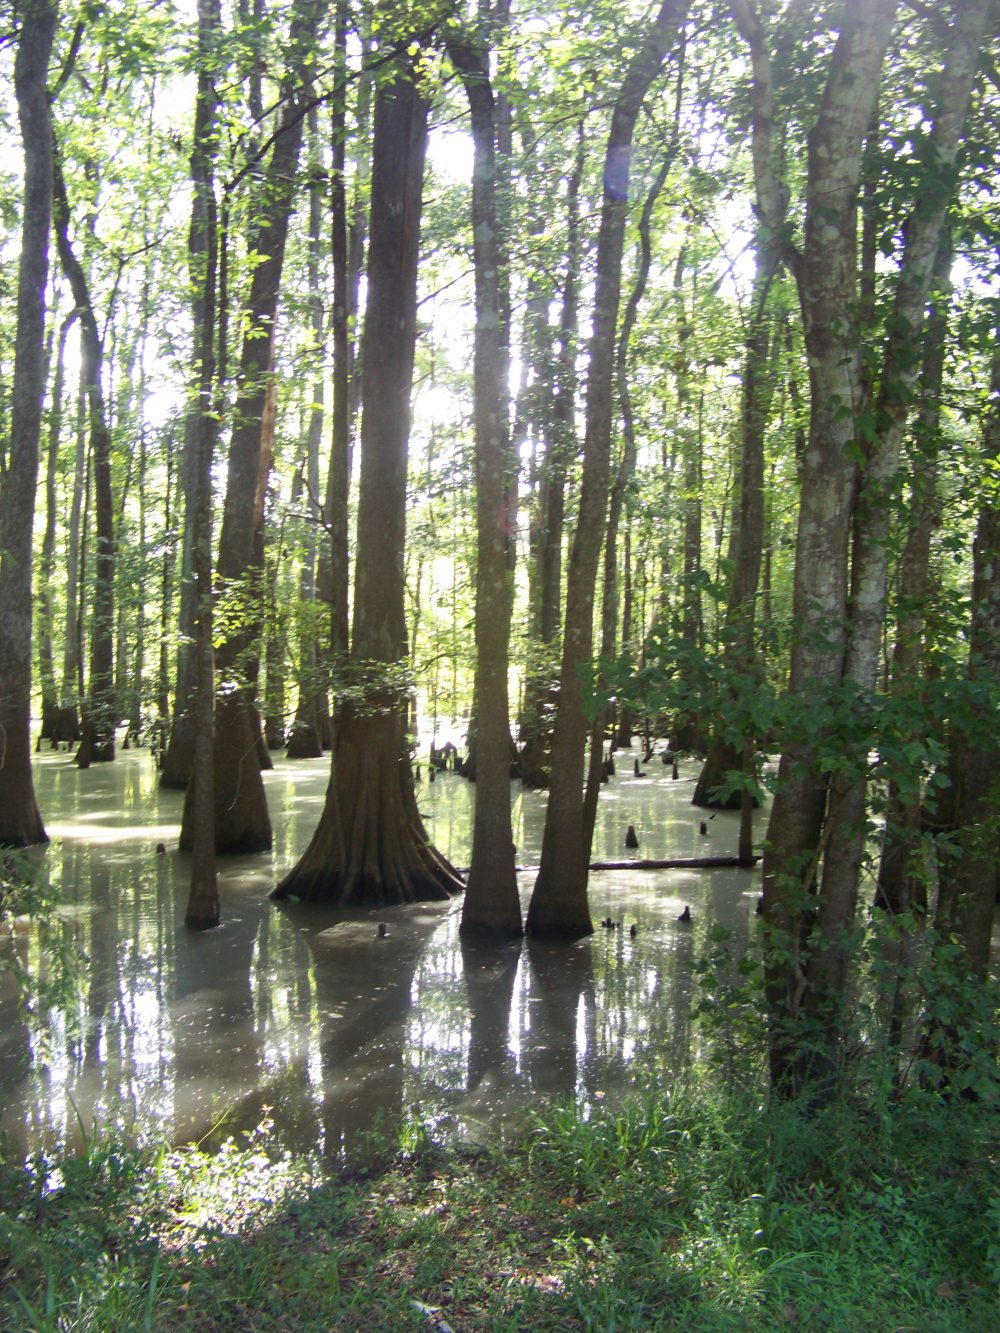 You Say It's Just a Swamp…